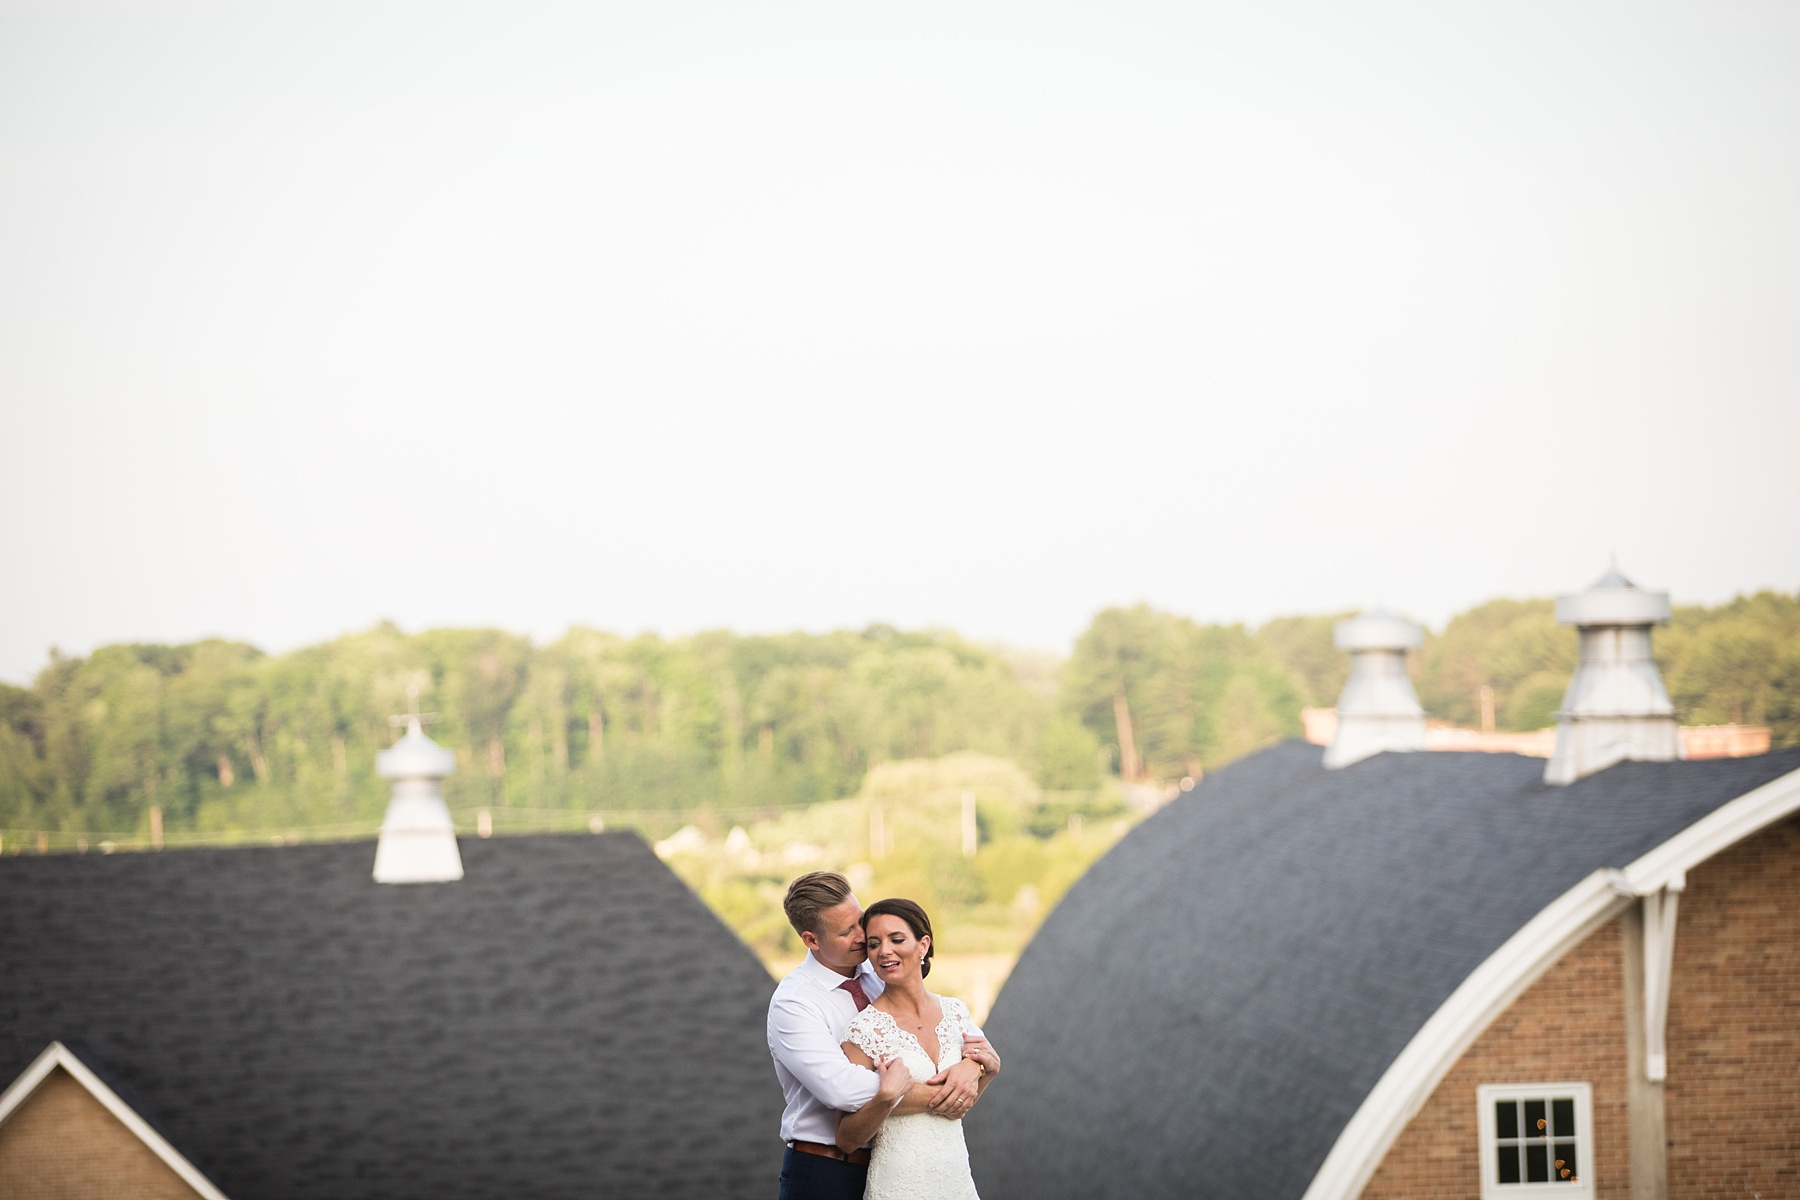 Brandon_Shafer_Photography_Traverse_City_Wedding_0059.jpg